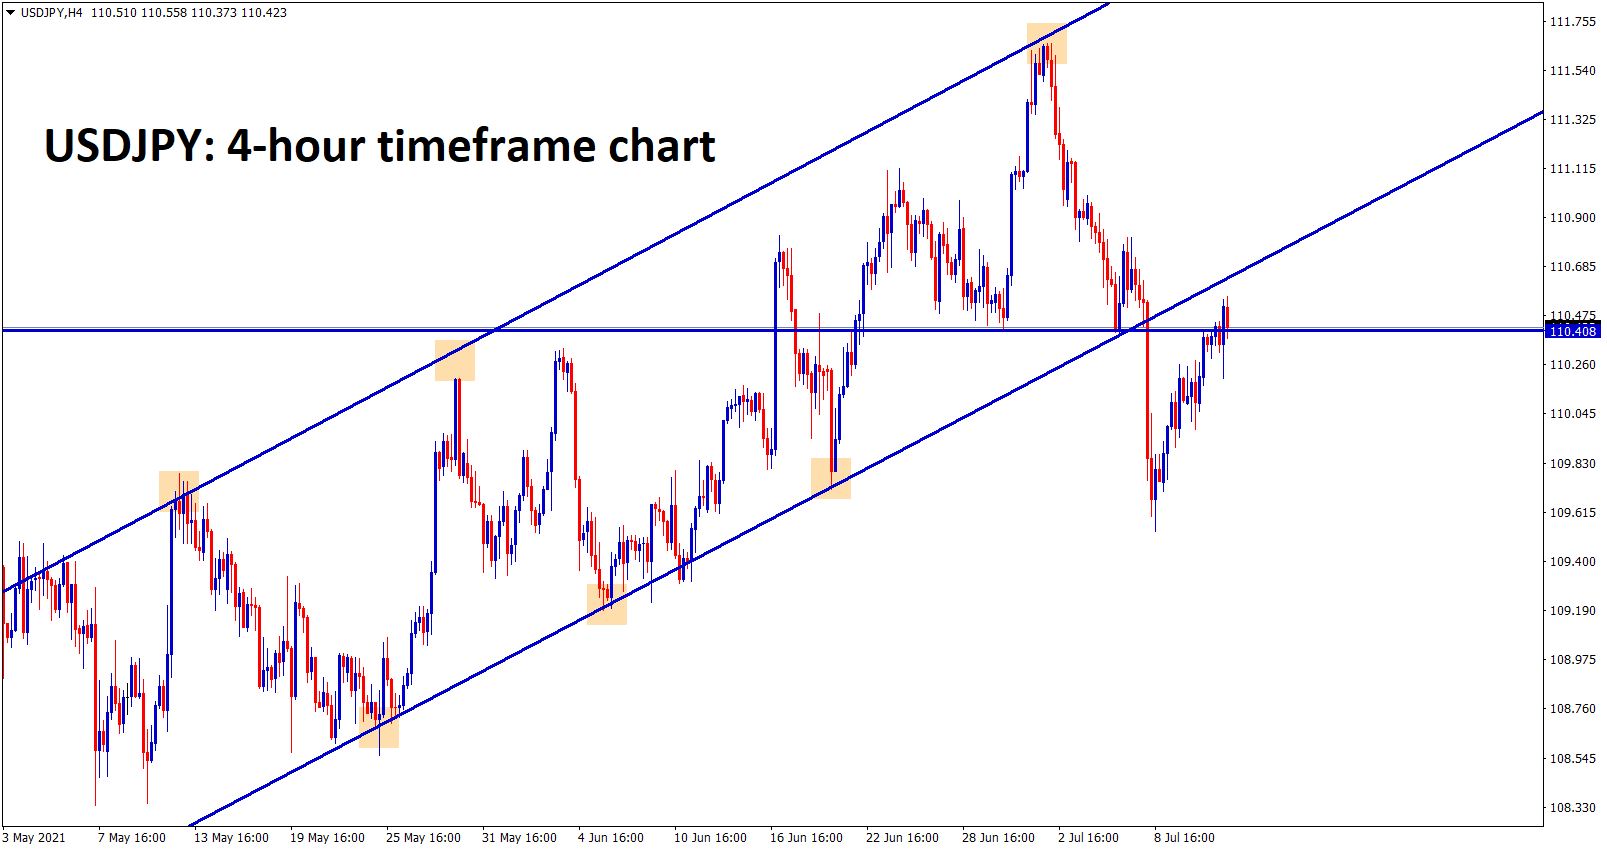 USDJPY is near to the broken level of Uptrend line and hits the previous support level